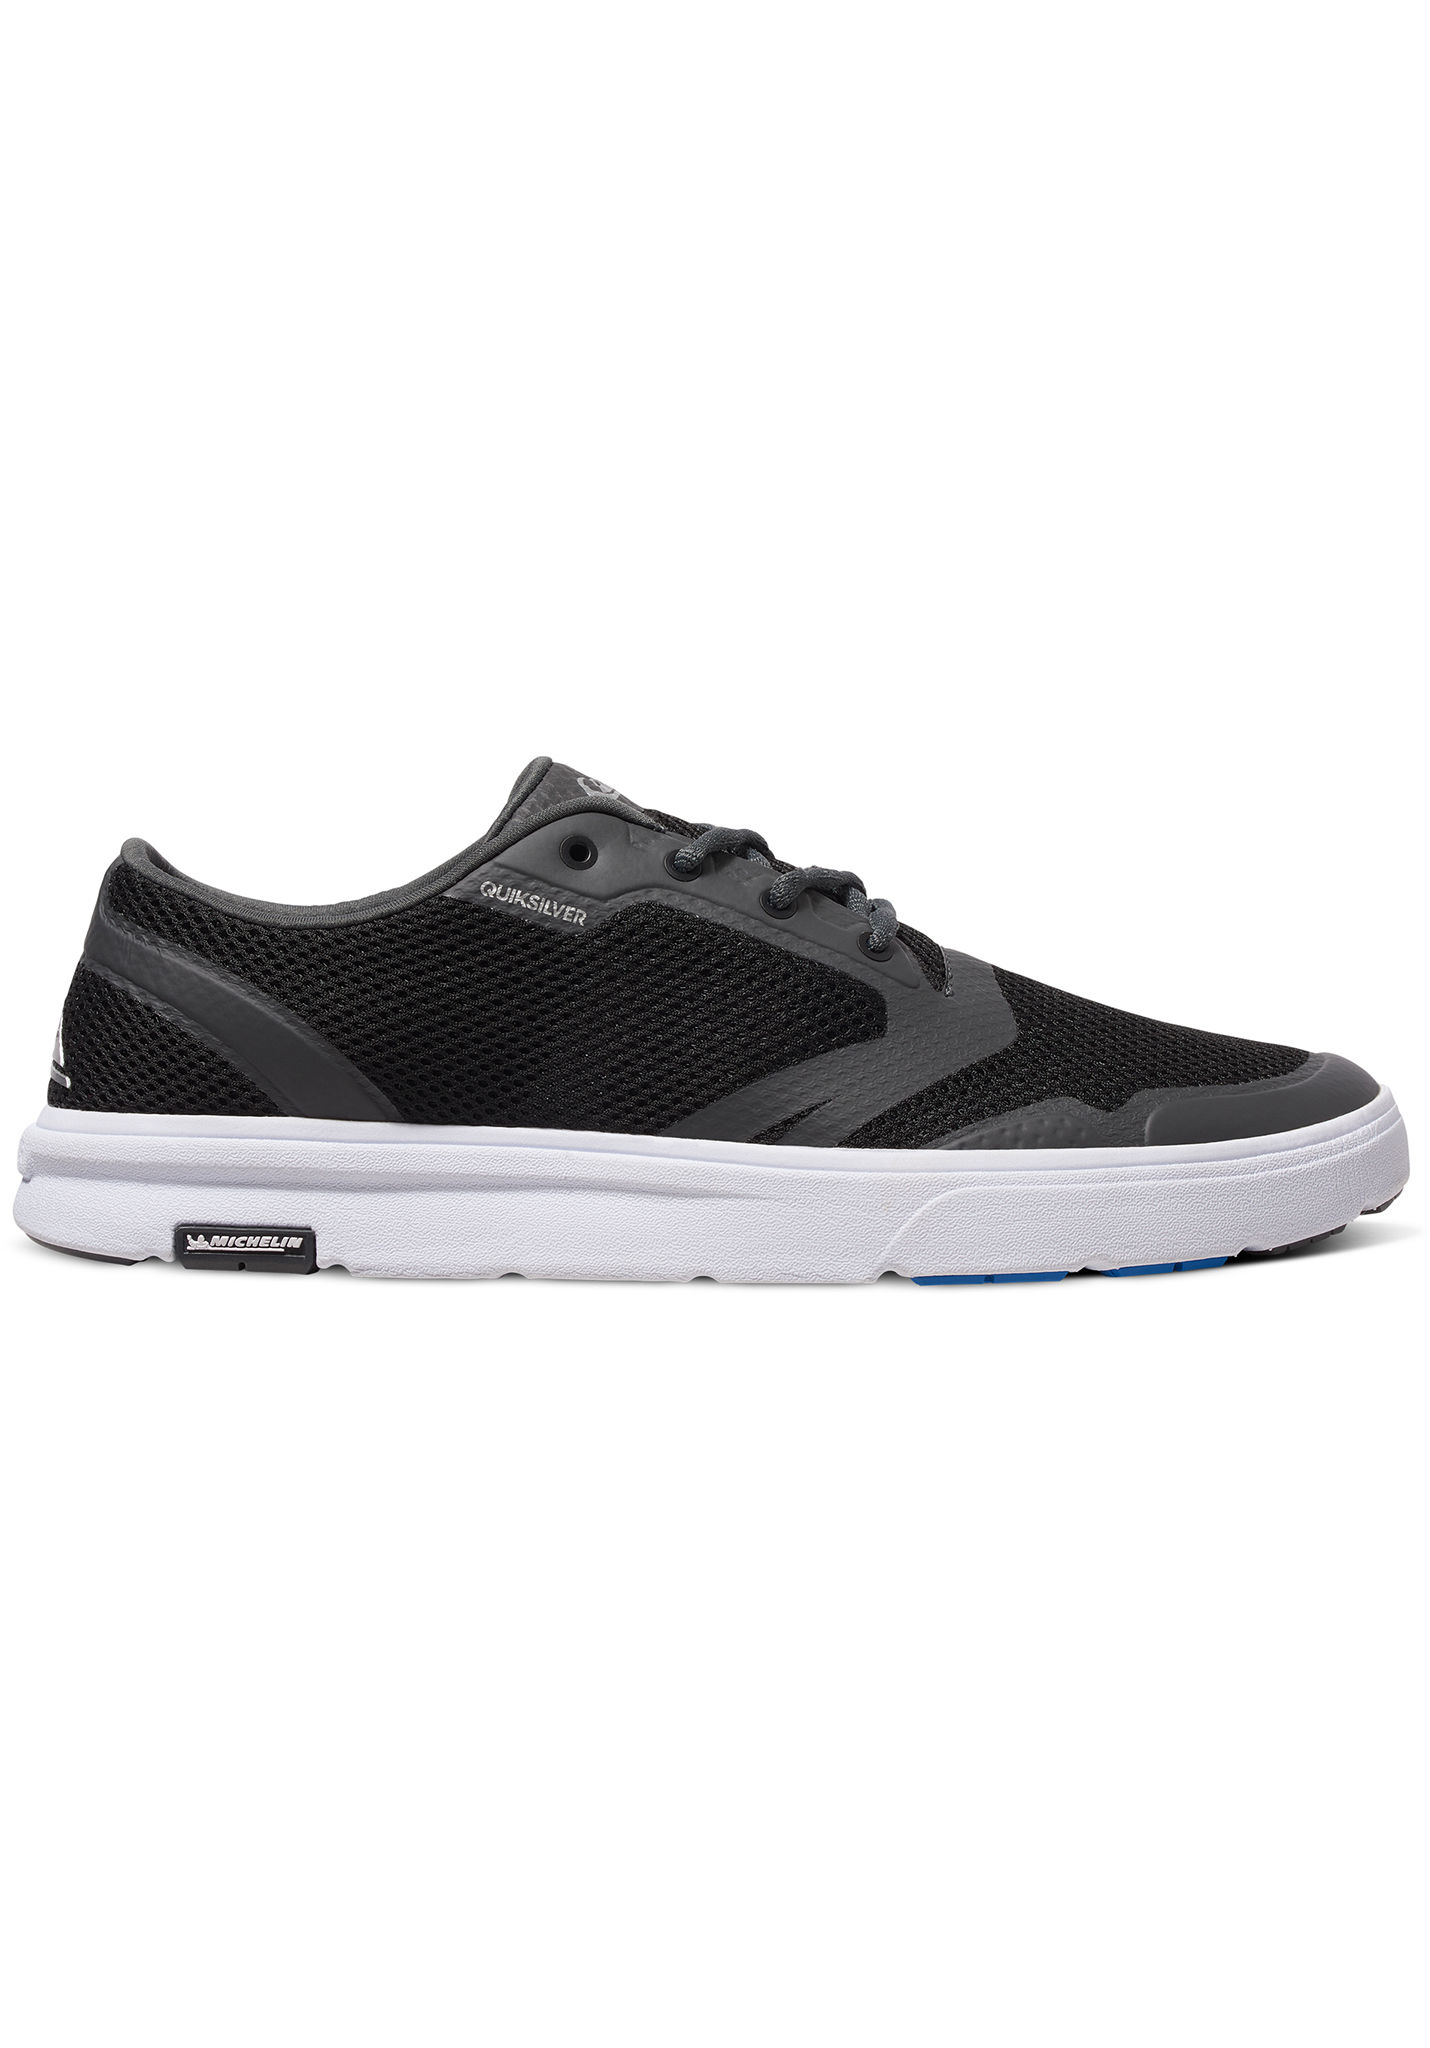 Sports Planet Baskets Quiksilver Homme Amphibian Noir Plus Pour UHUnaPqA